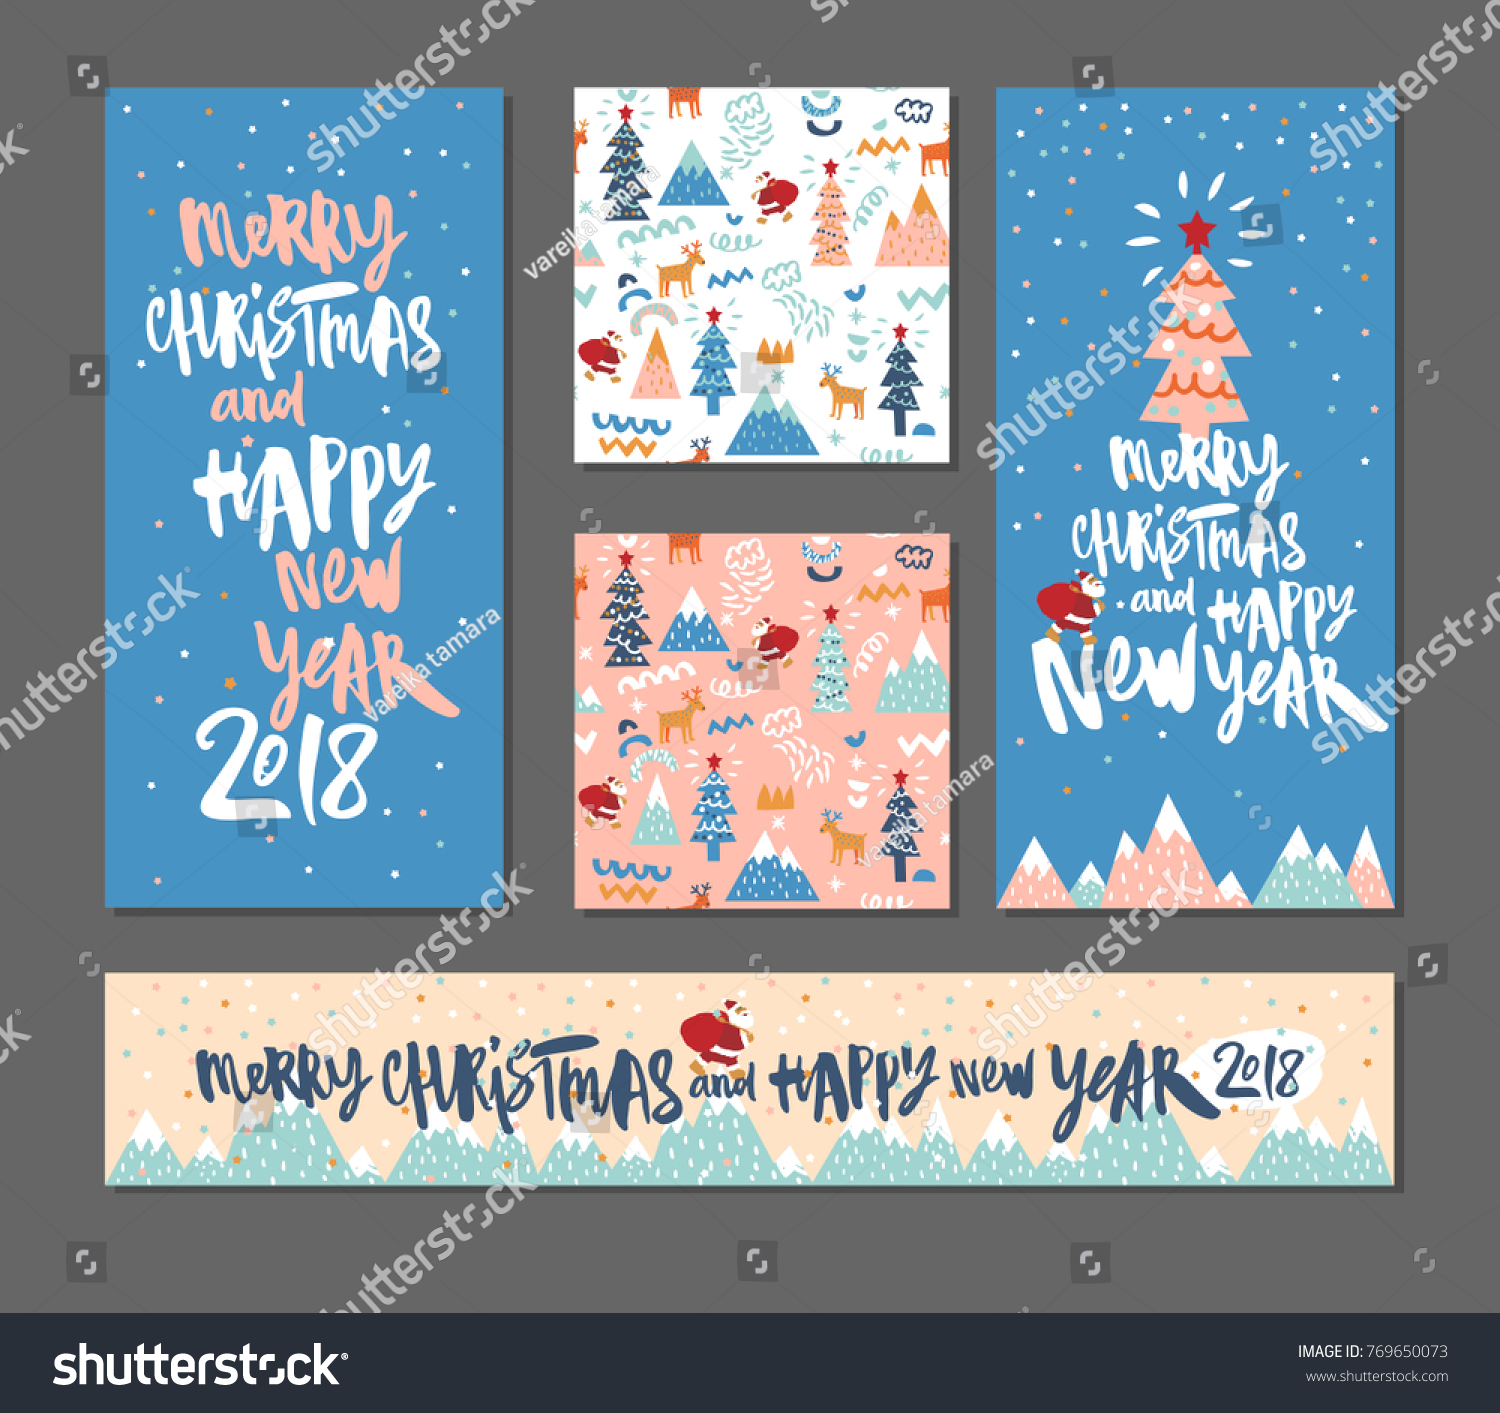 set of happy new year and merry christmas background with santa and christmas tree hipster